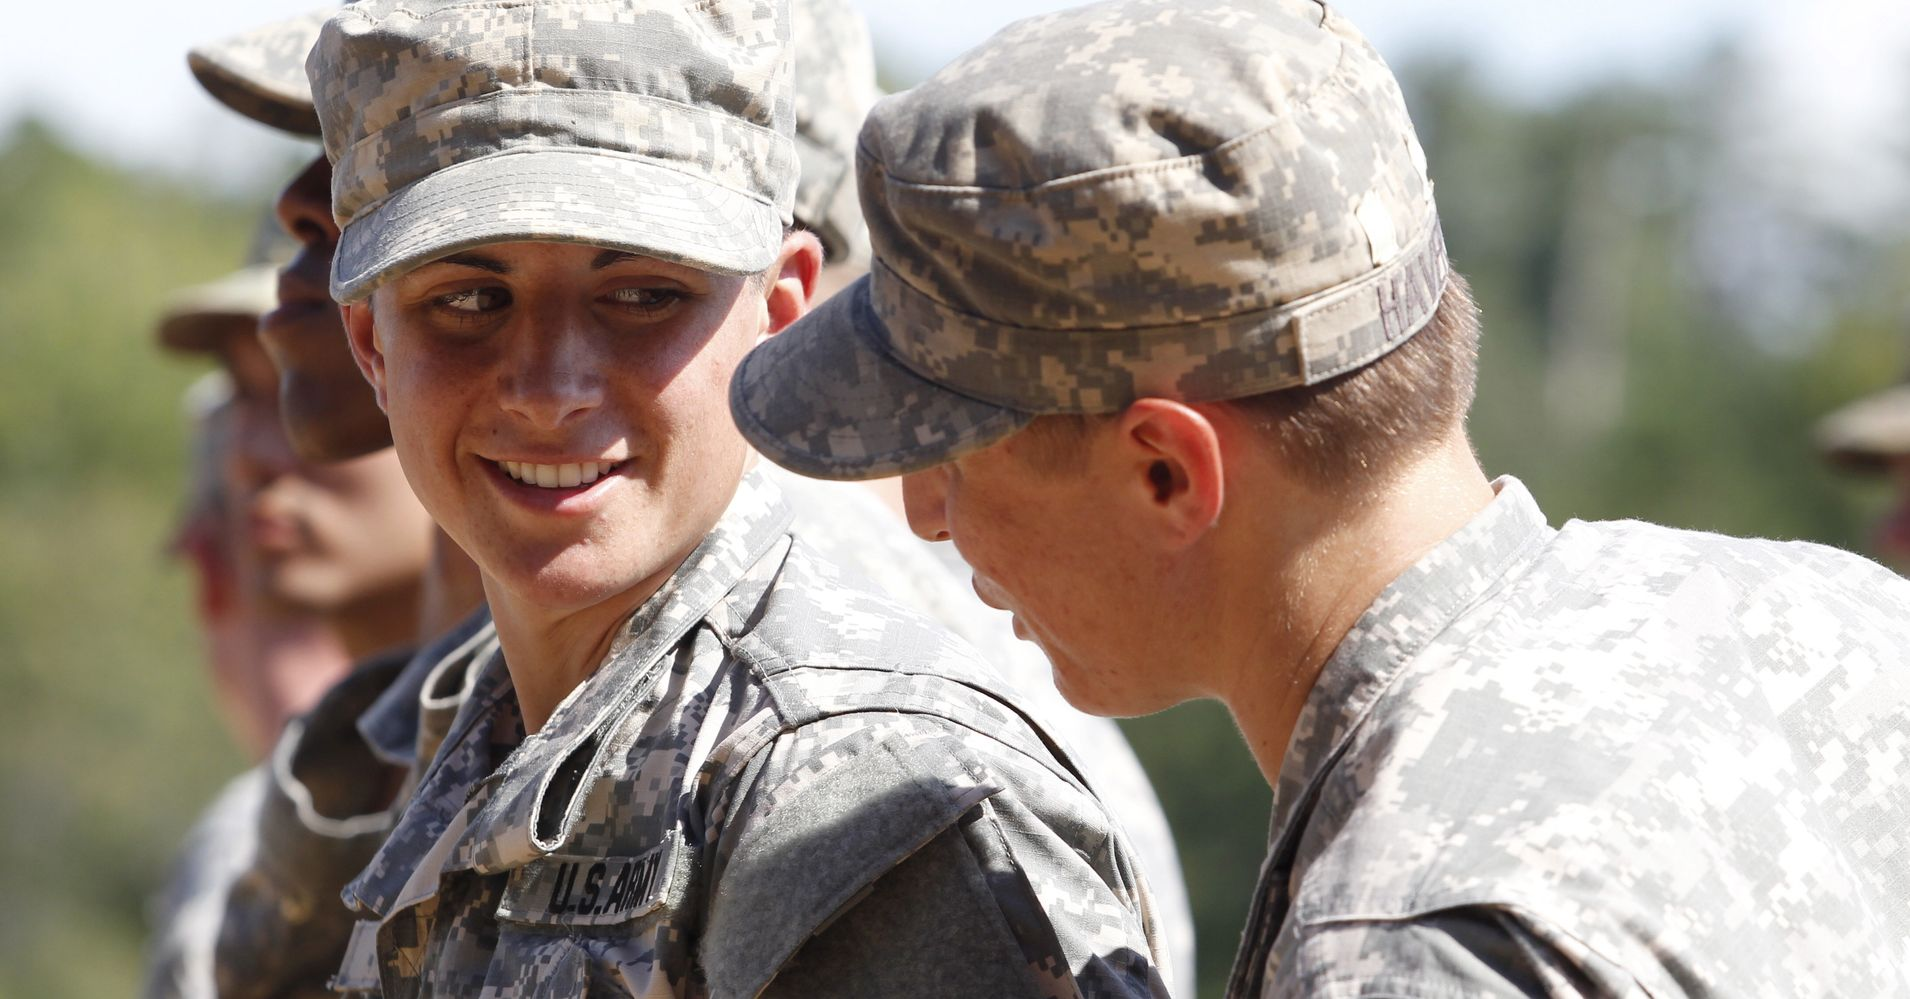 draft women into the military essay House measure would require women to register for the military draft measure would require women to does not support drafting women into combat.